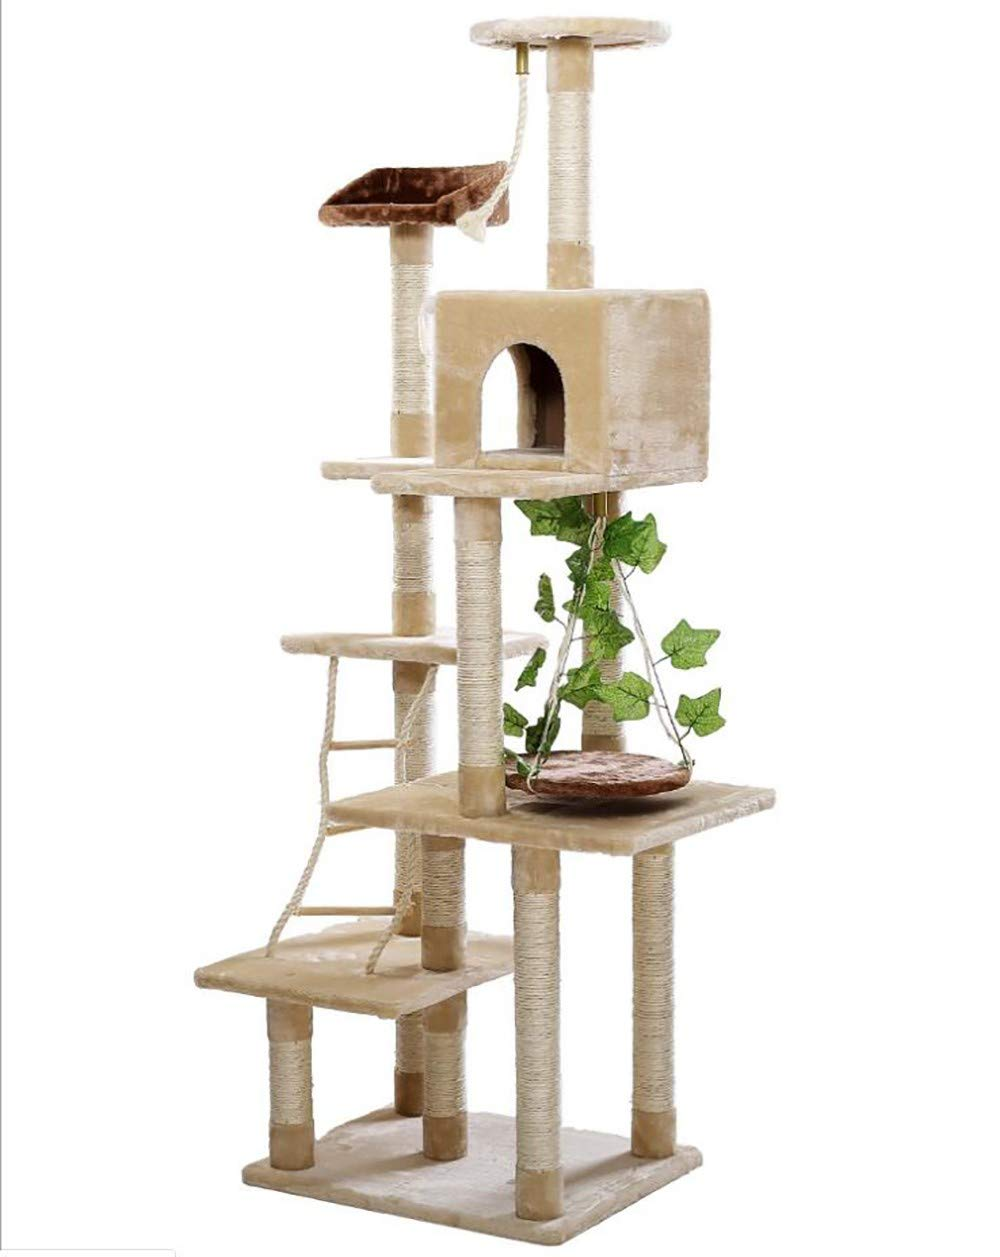 Cat Tree Condo Furniture Natural Sisal Cover Multi-Level Cat Tree Multi-Layer Platform Double Cat Litter Spacious and Comfortable Sturdy and Scratch Resistant Height is 185 cm